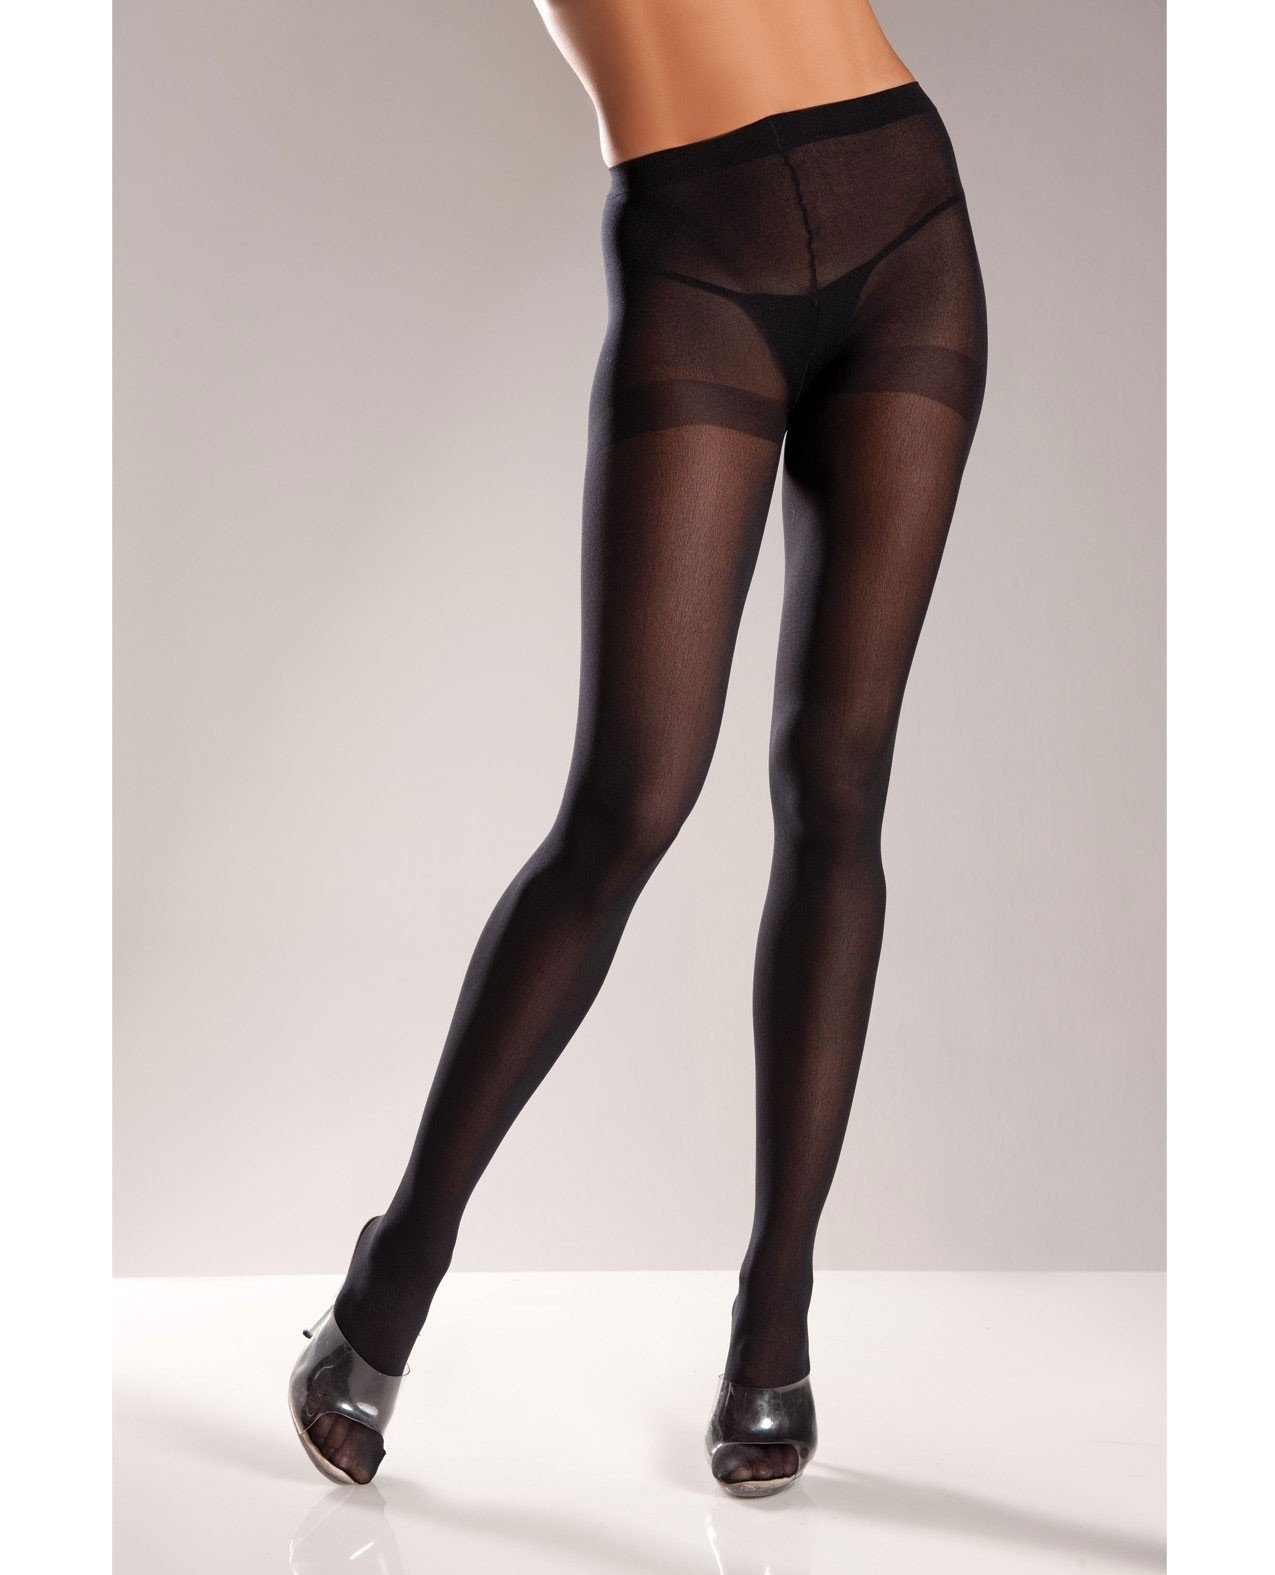 Our opaque pantyhose are